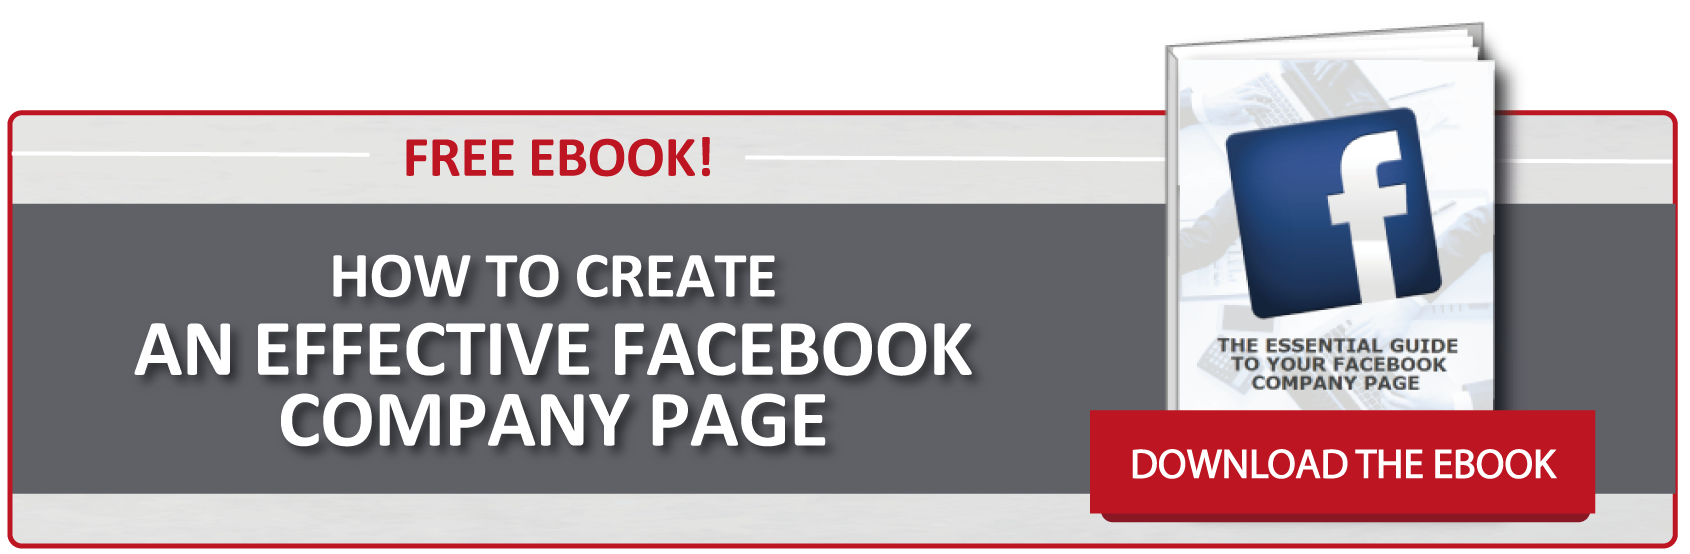 Guide_to_Facebook_Company_Pages